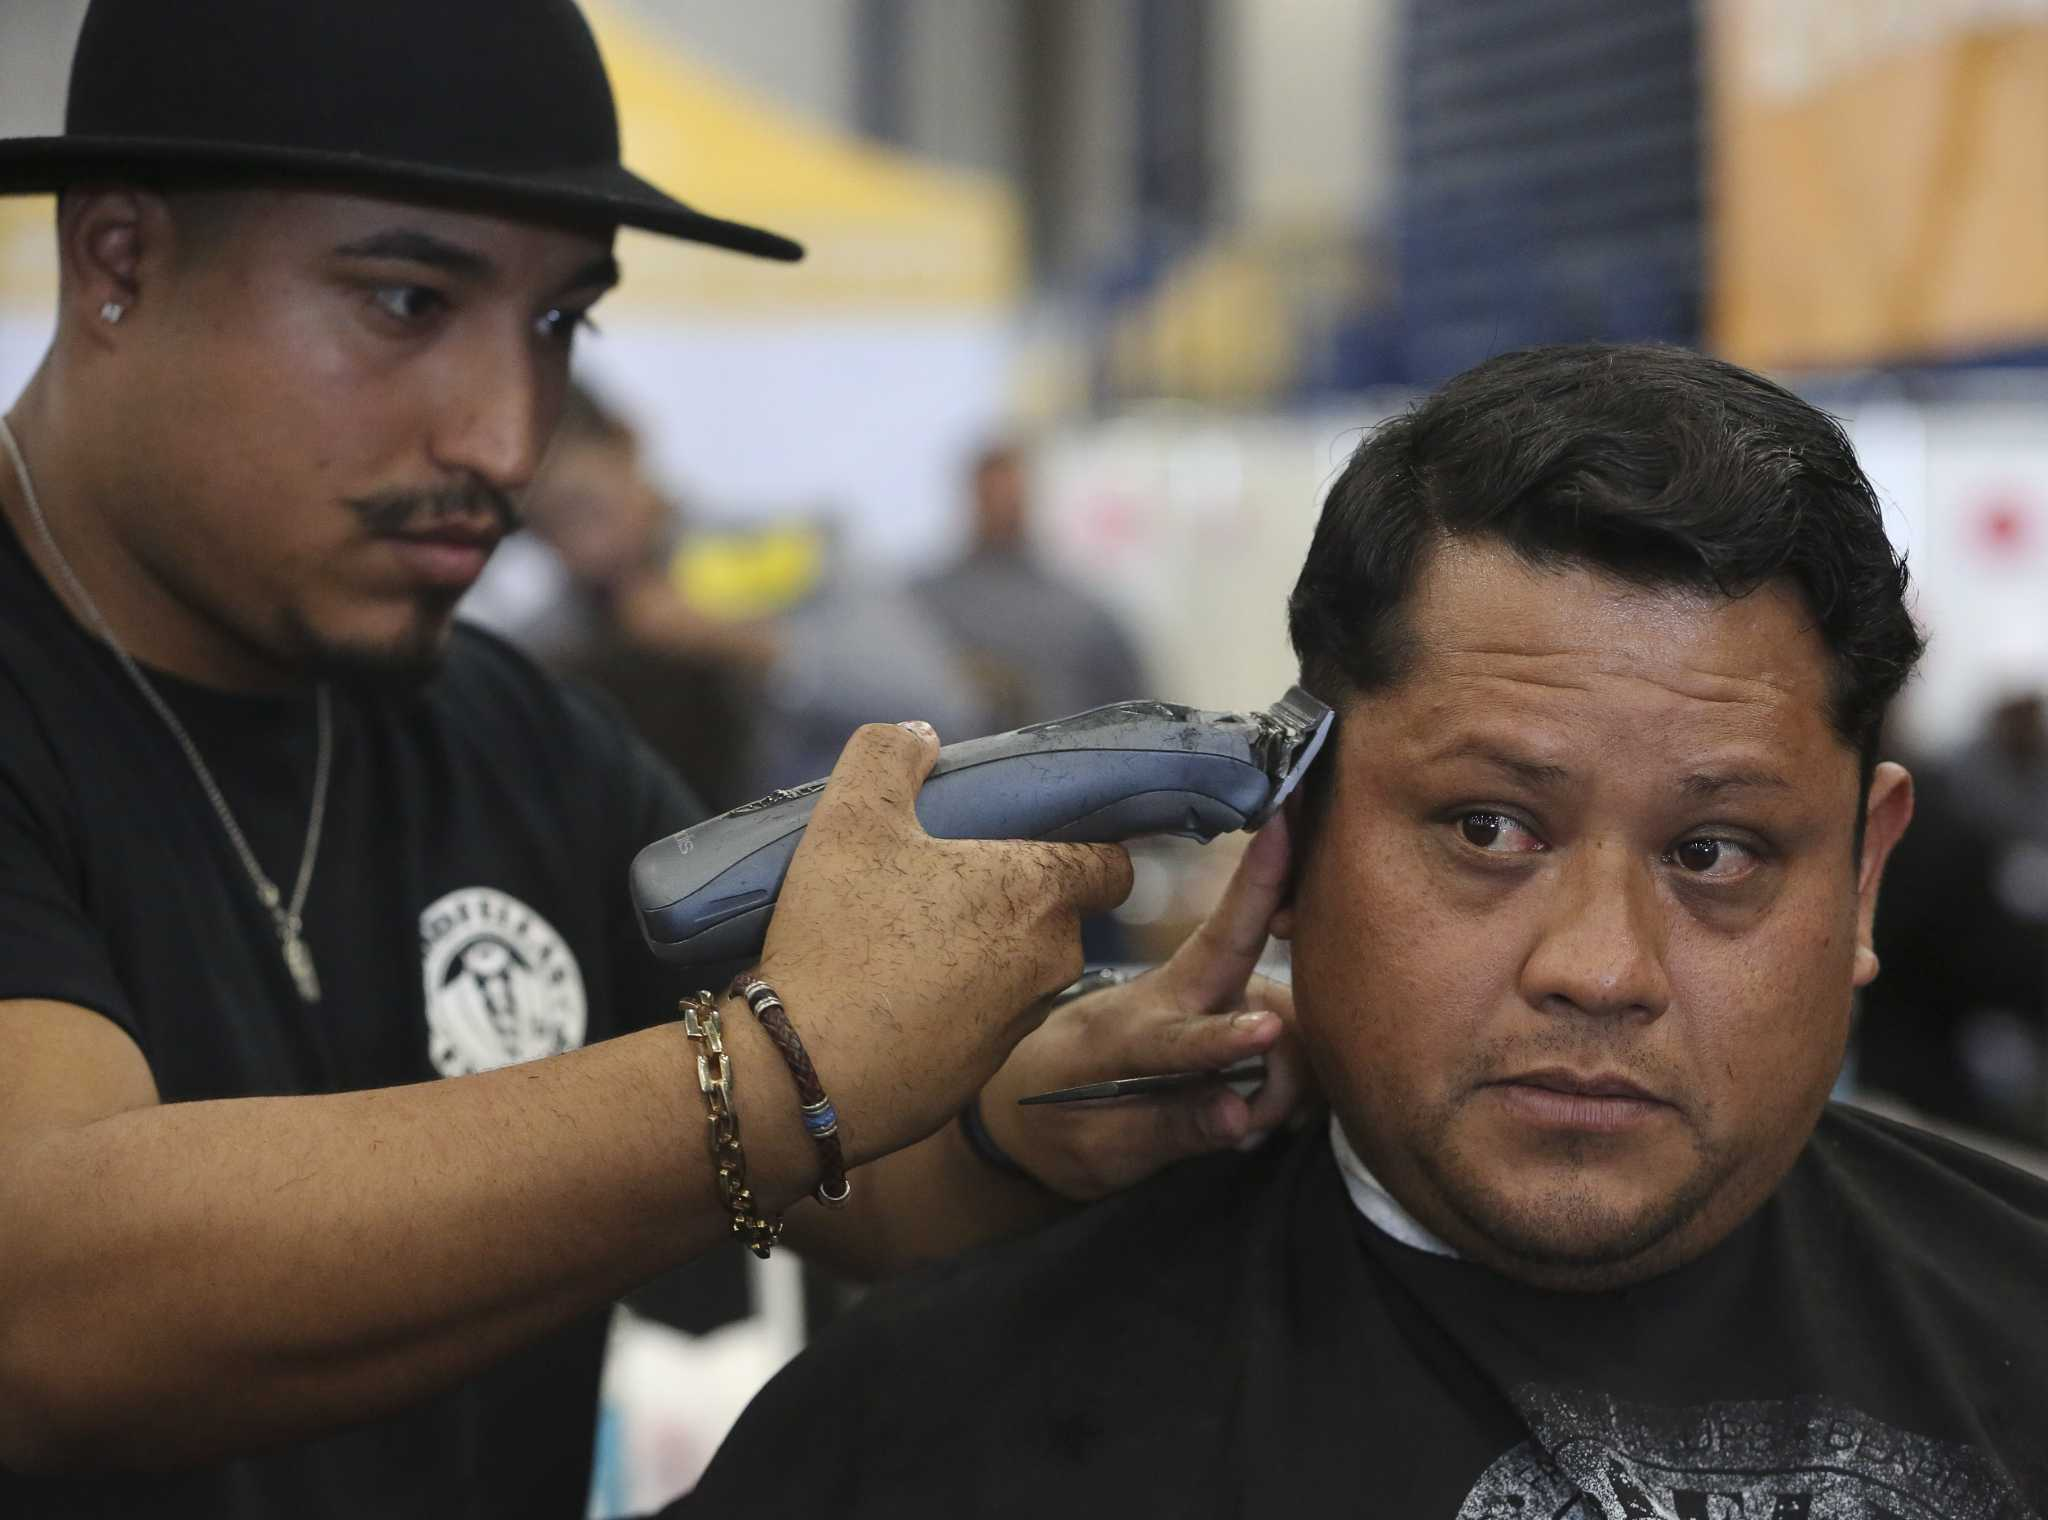 Best Houston-area barbershops, according to Yelp